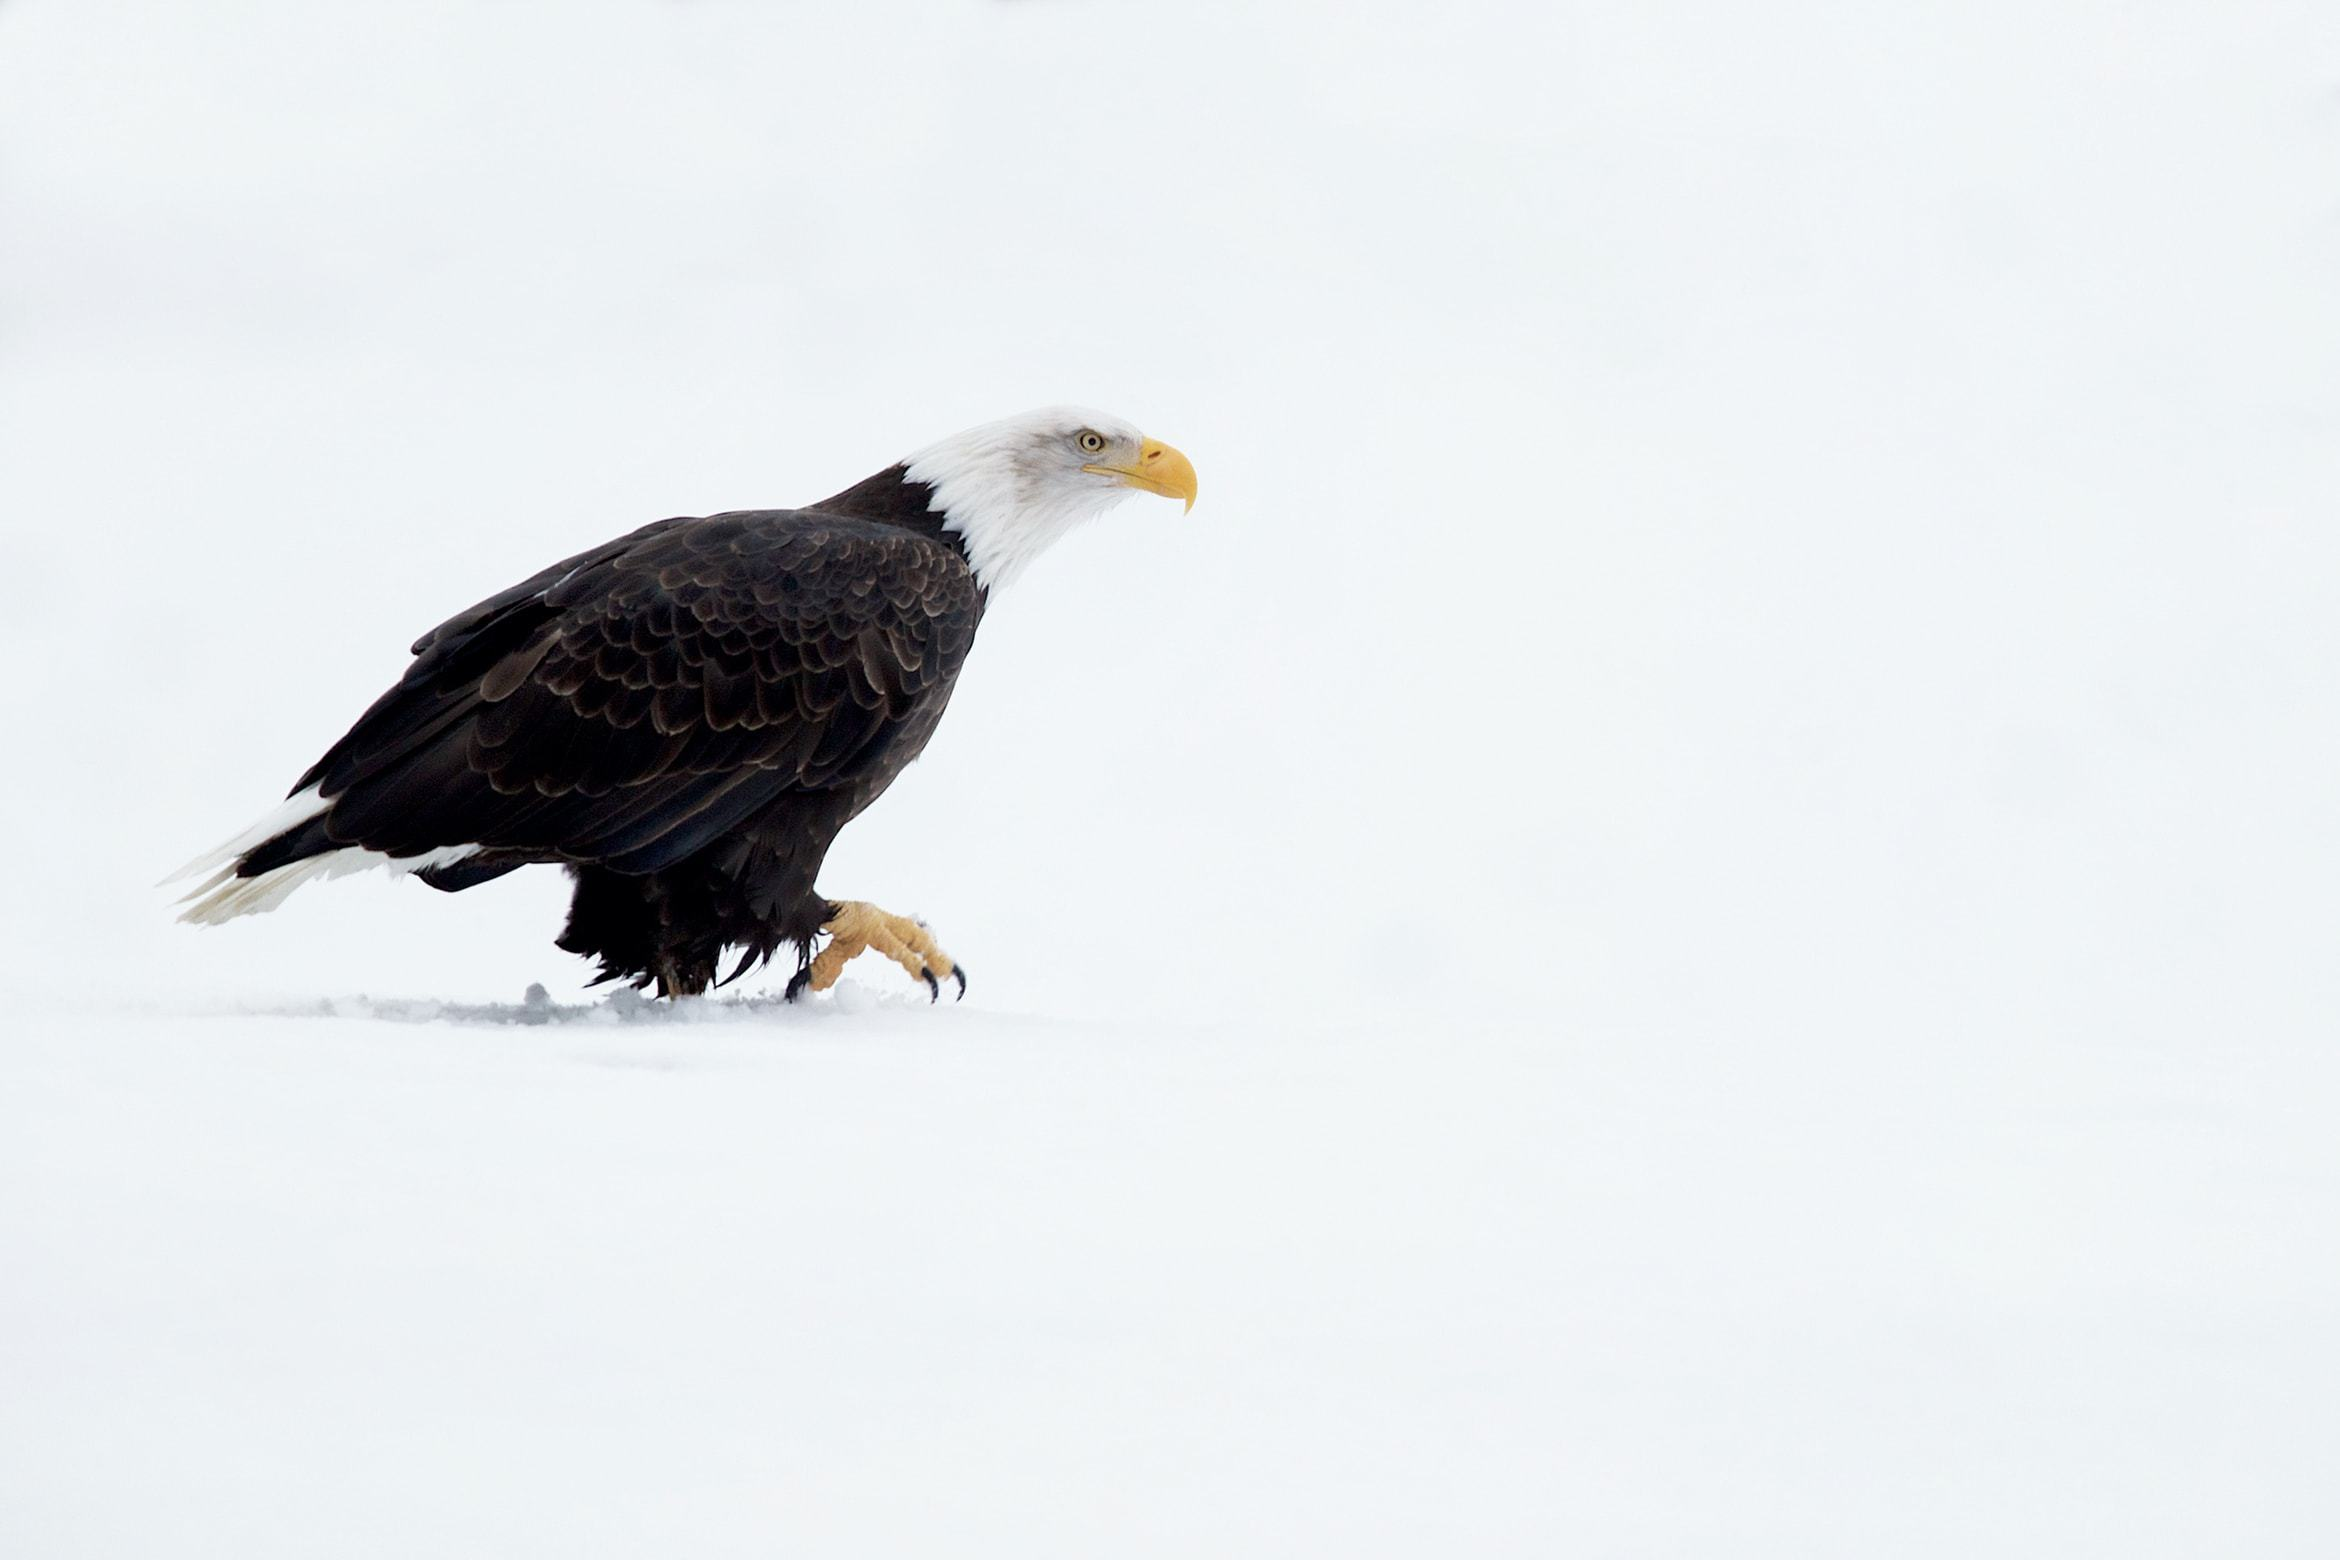 Example of the type of image that you may have opportunities to capture during the NaturesLens Bald Eagles of Alaska Photography Holiday